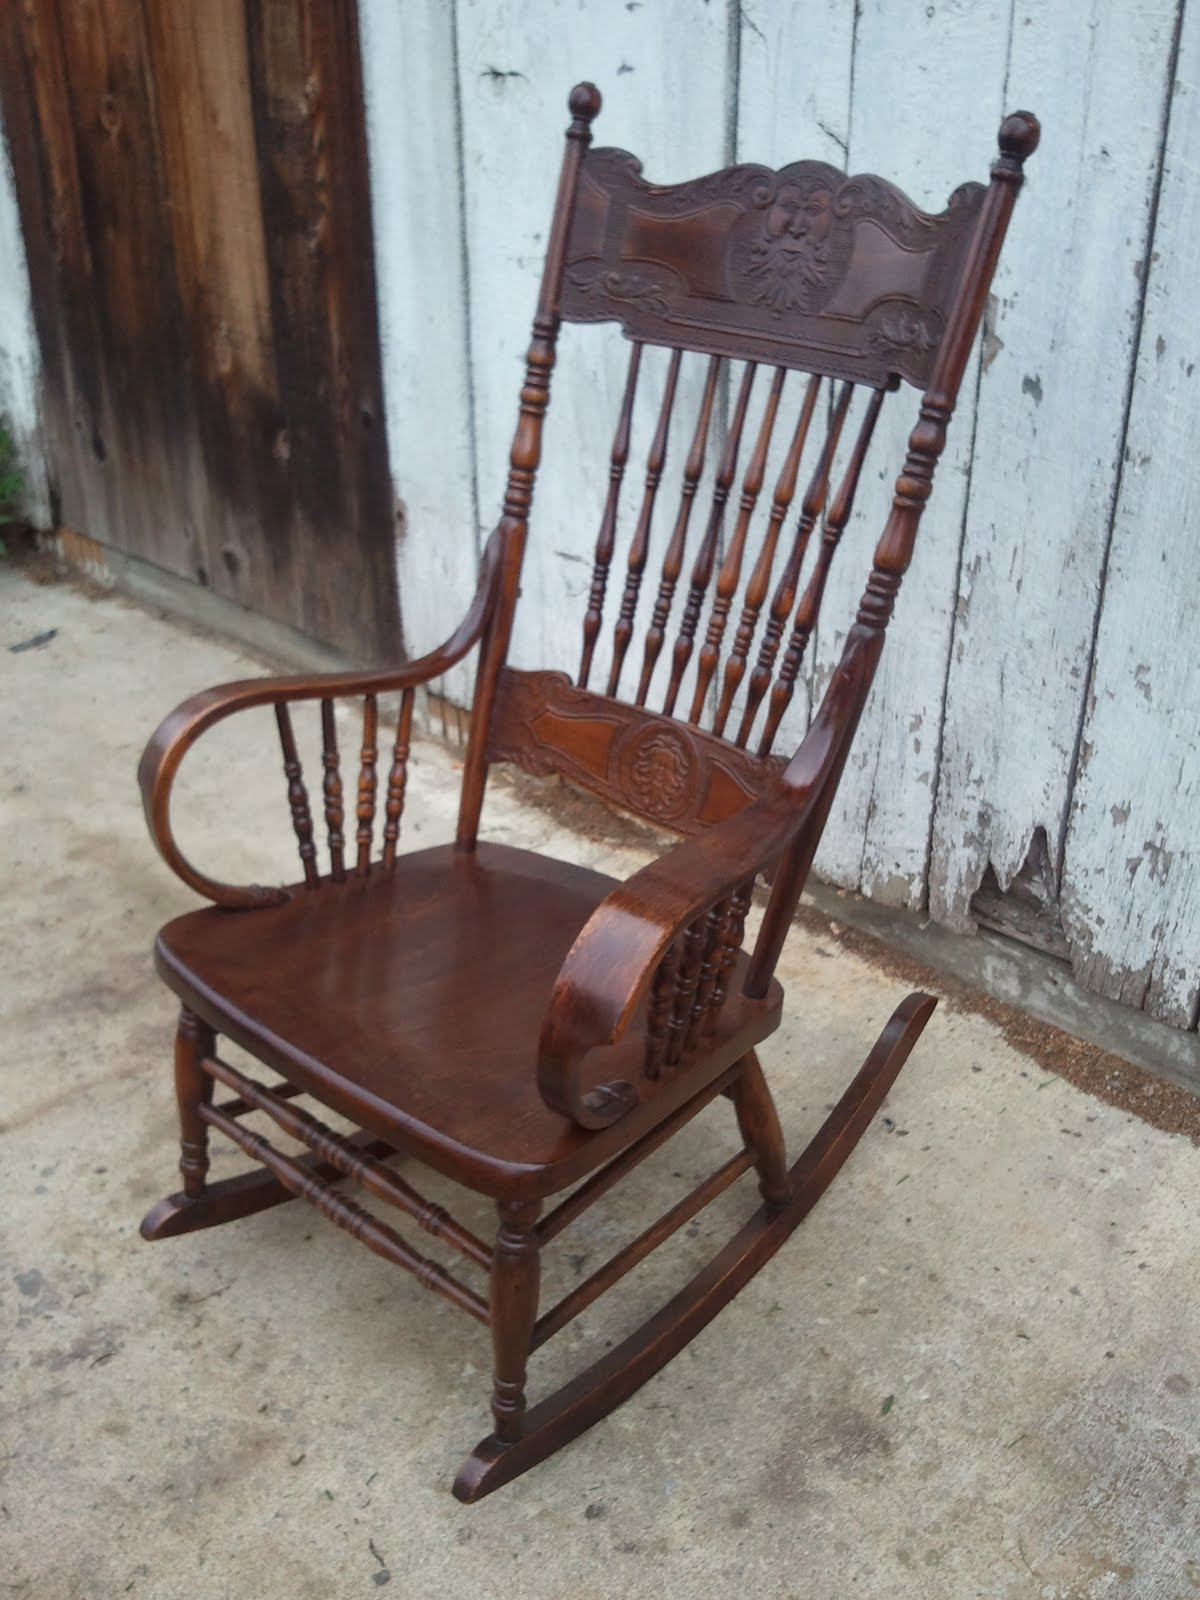 Rocking chairs morris chairs antique mission oak rocking chair - The Results Can Be Seen In The Three Photos Of The Completed Rocking Chair